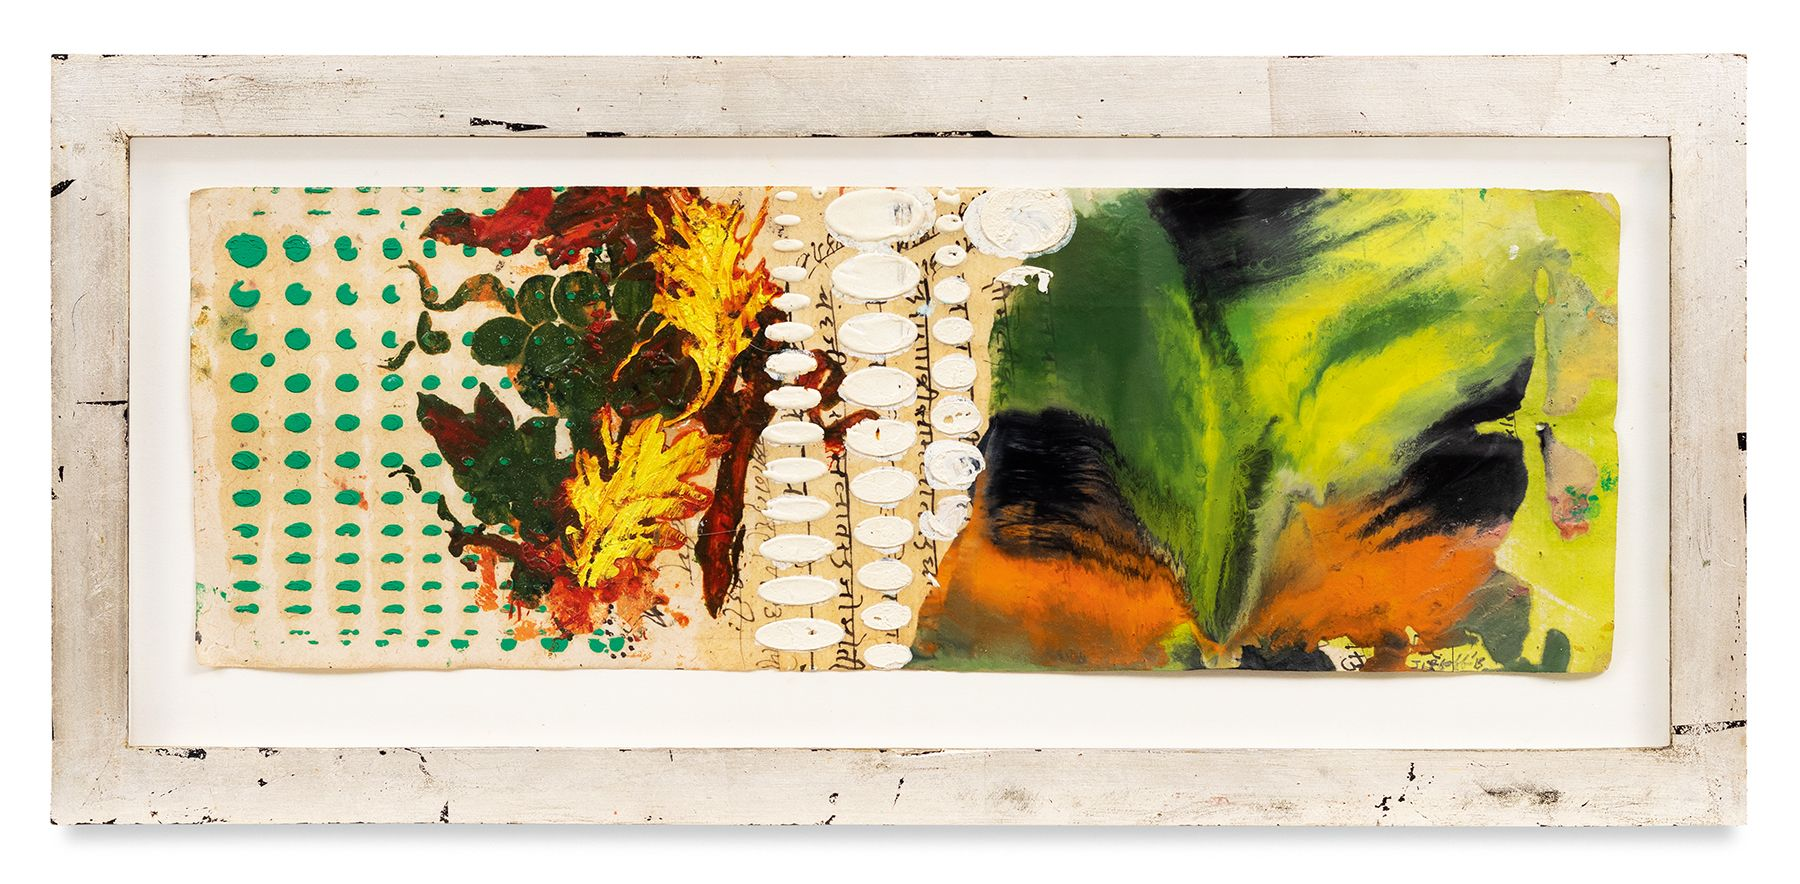 Raga 16, 2013, Oil stick, encaustic, vintage Indian paper, in artist's frame, 10 x 20 inches, 25.4 x 50.8 cm, MMG#30623